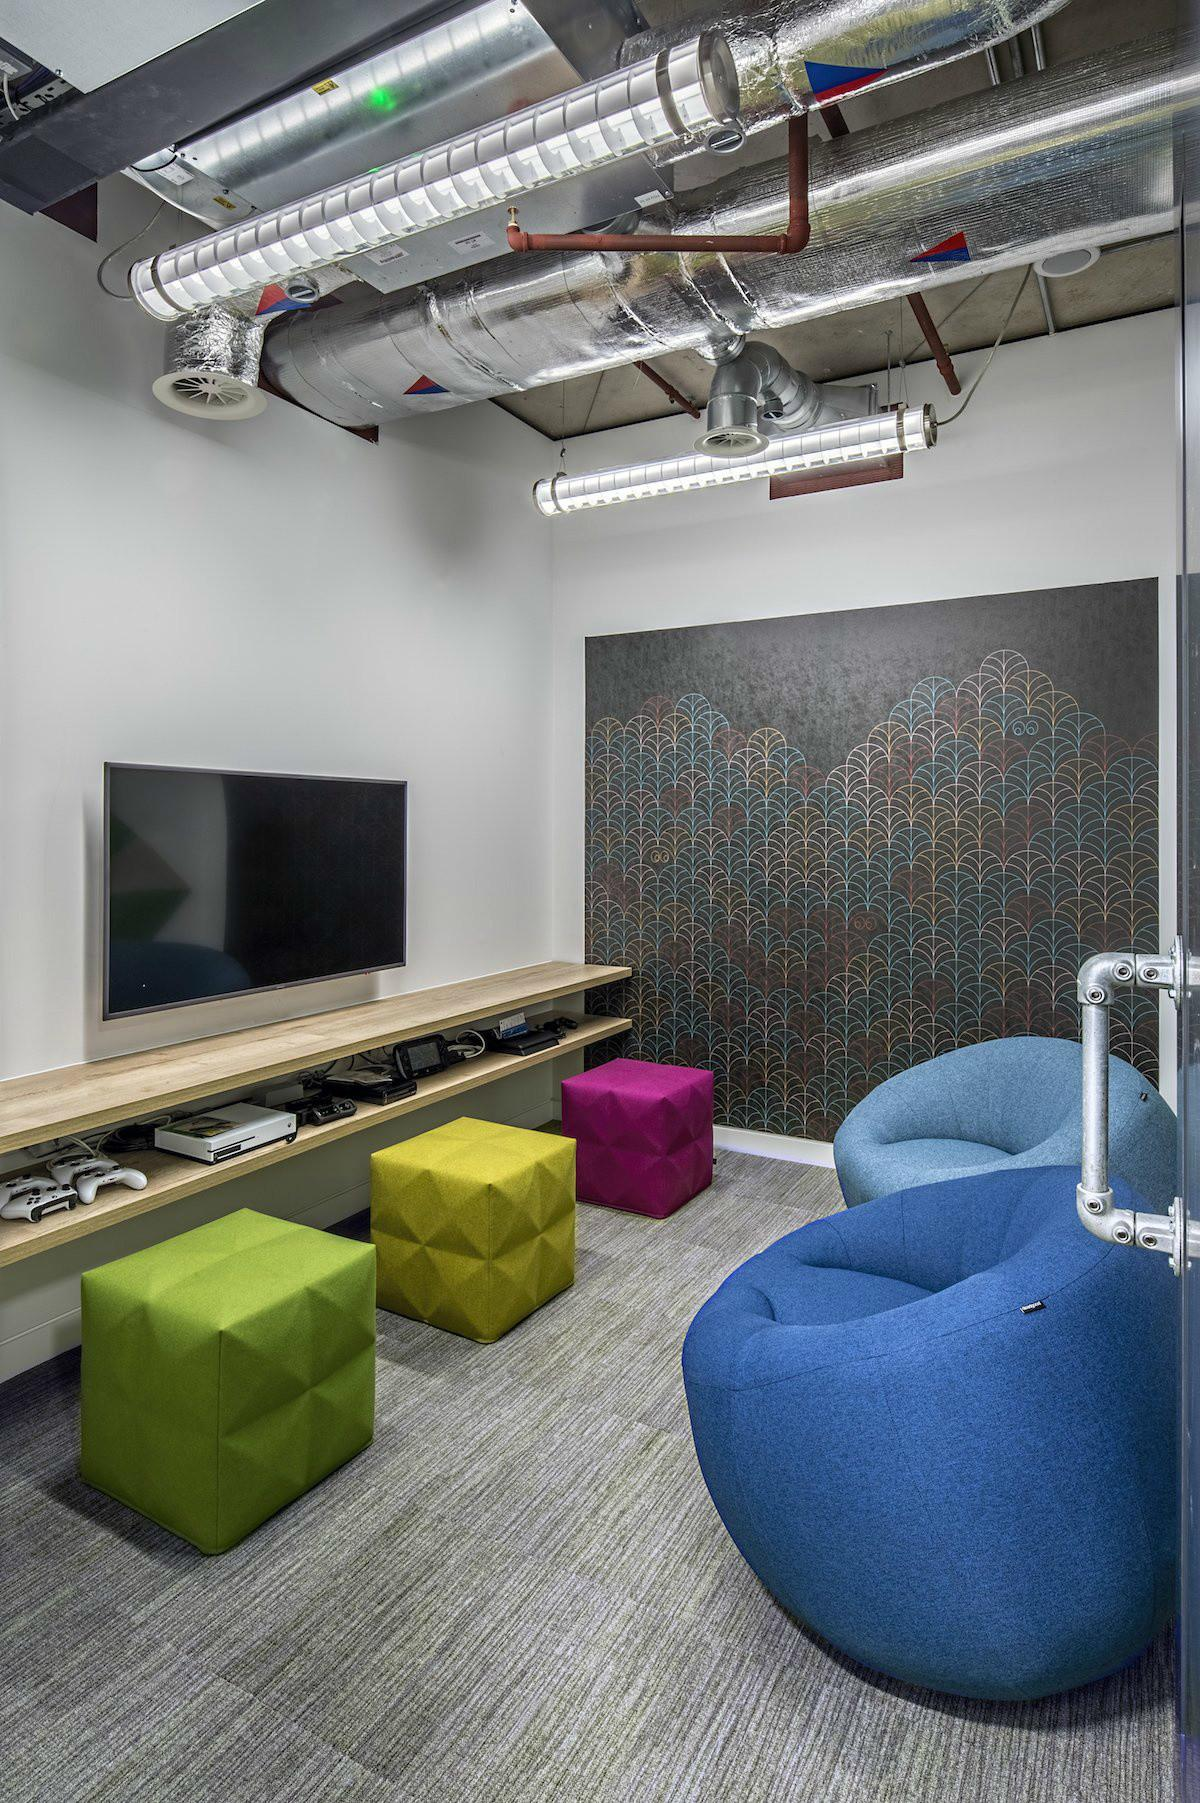 Adobe New London Office Features Industrial Yet Colorful